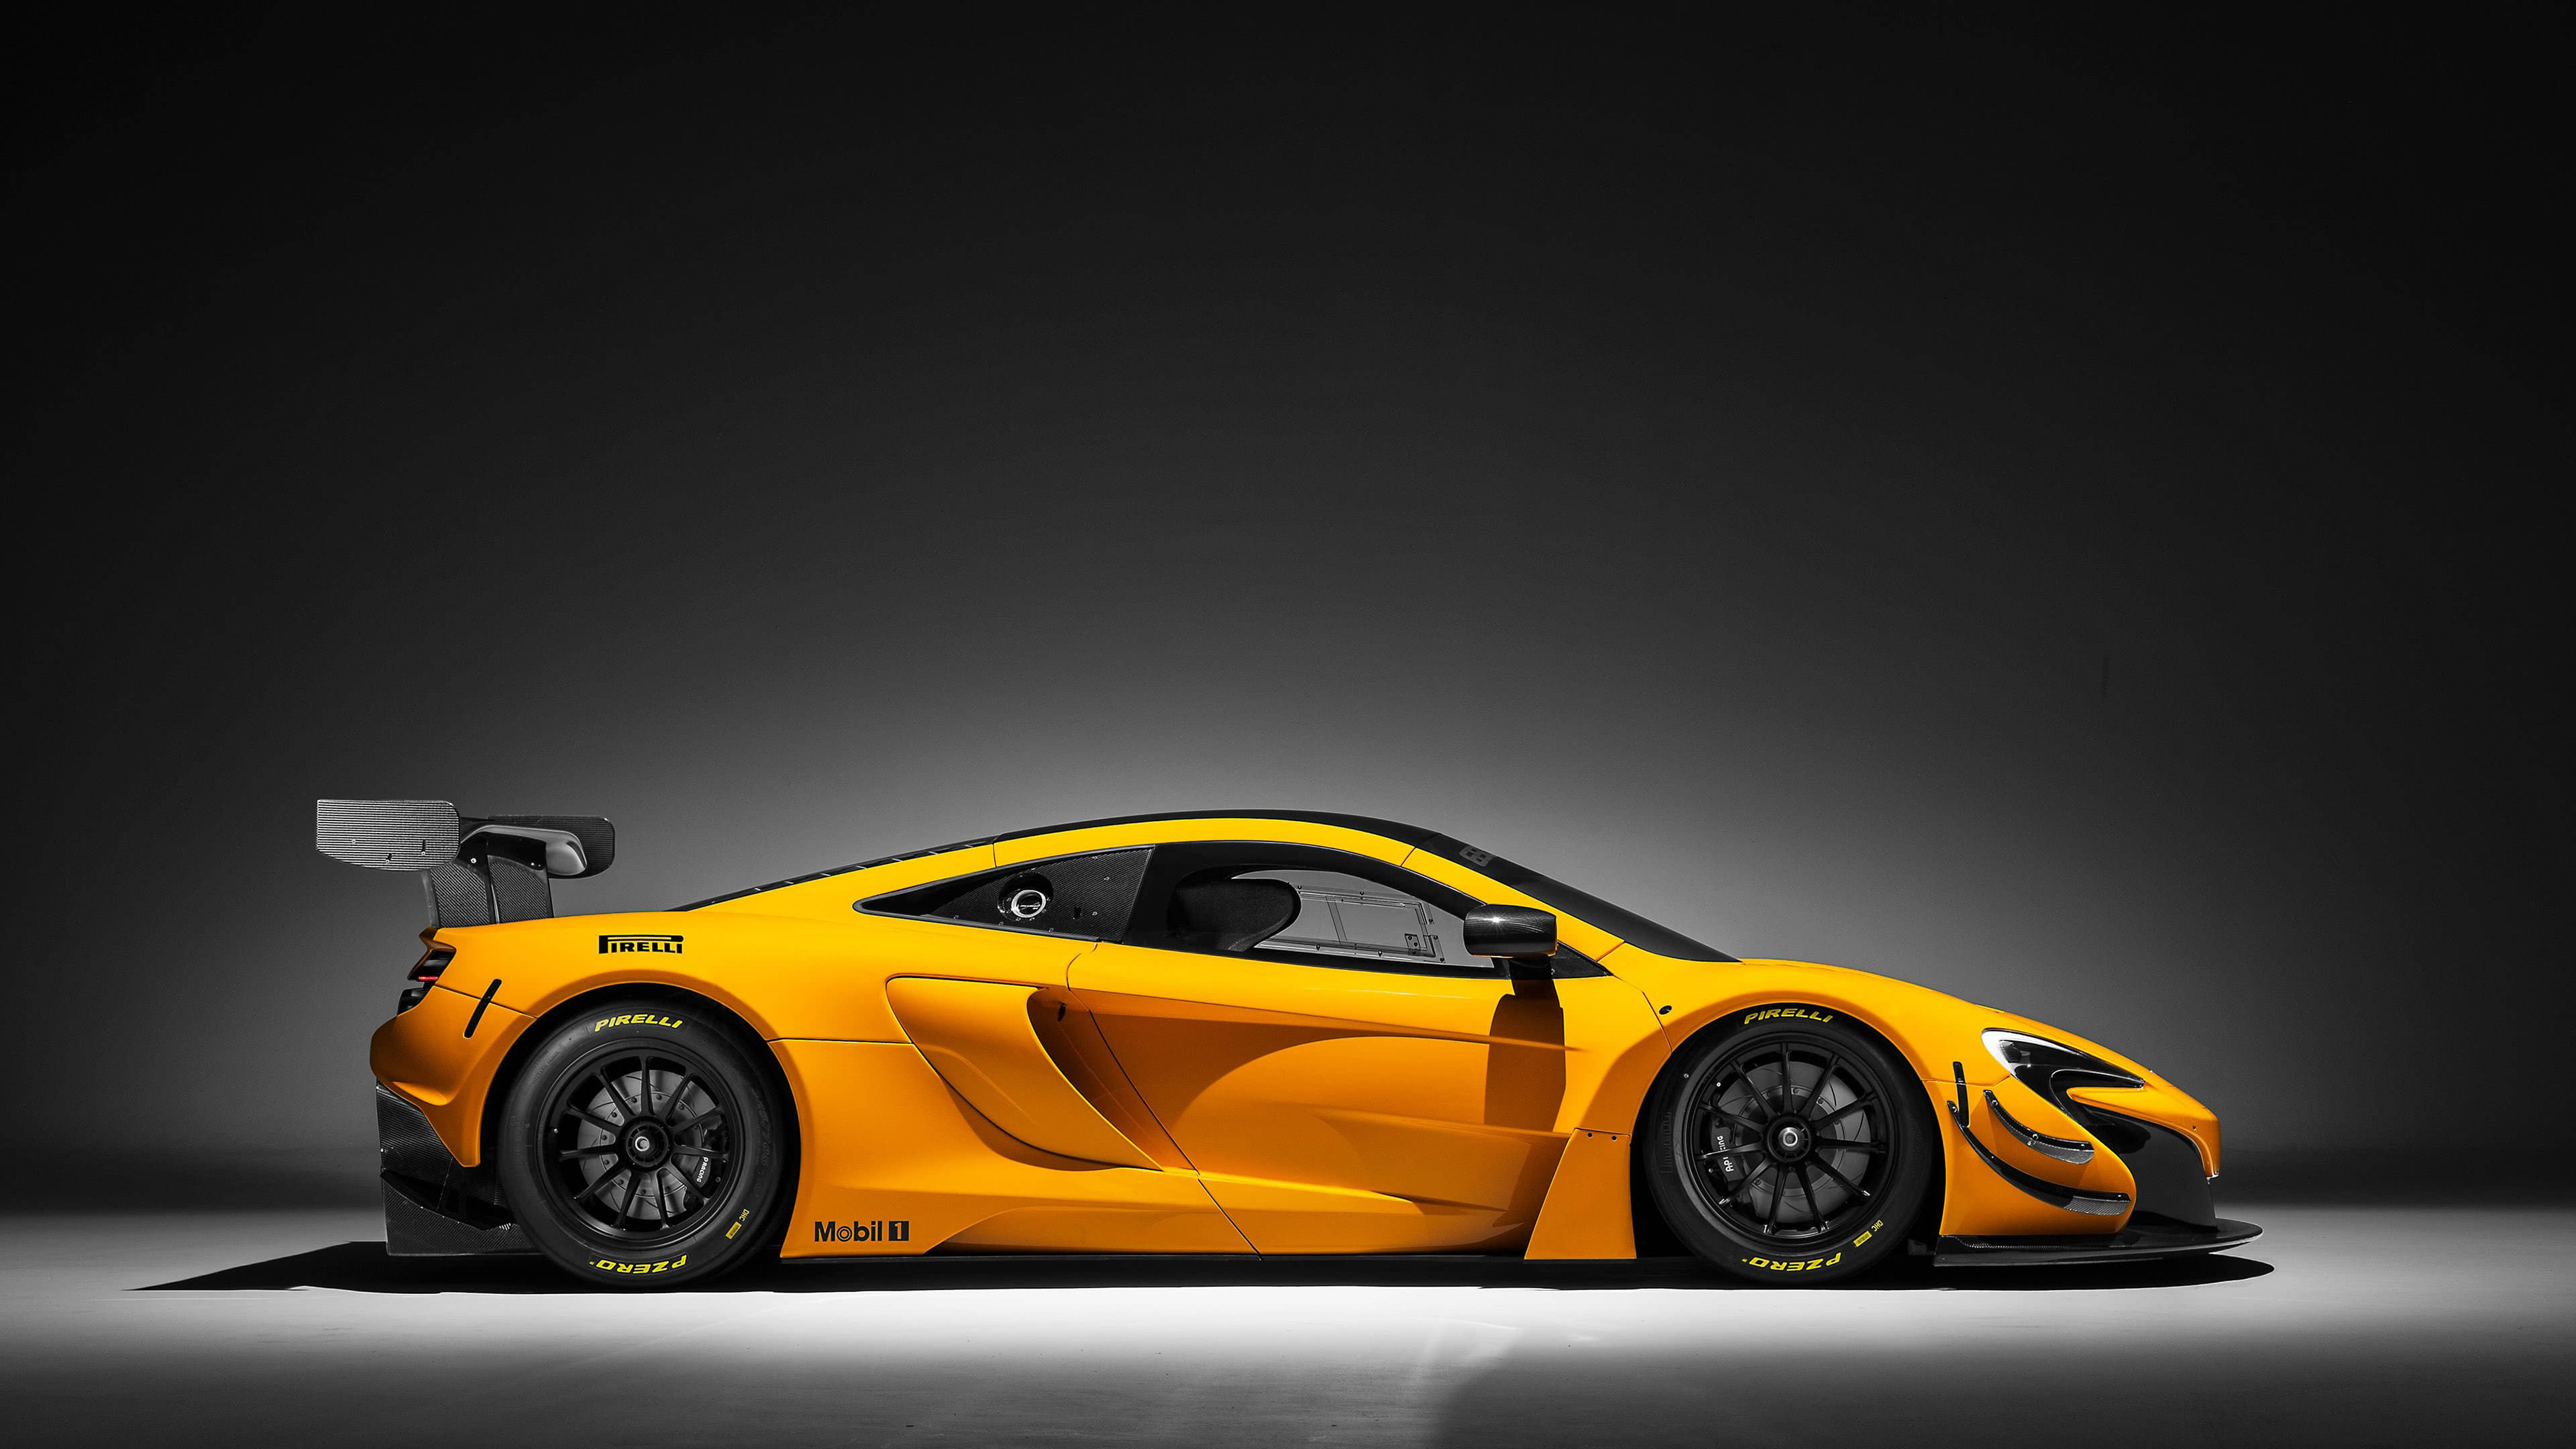 mclaren 650s gt3 side uhd 4k wallpaper